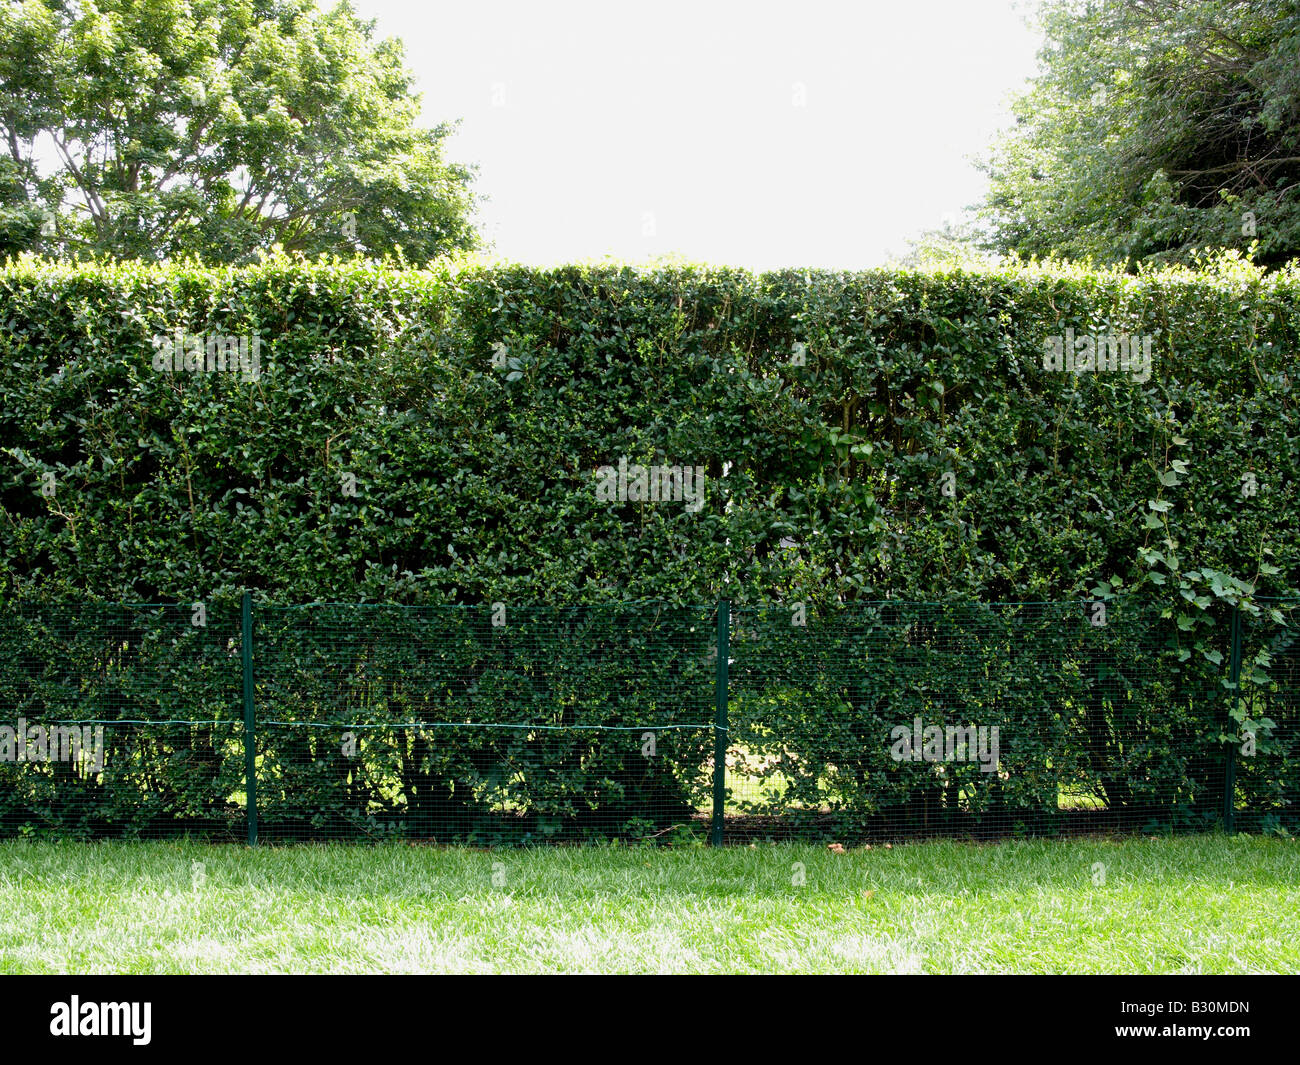 hedgerow - Stock Image